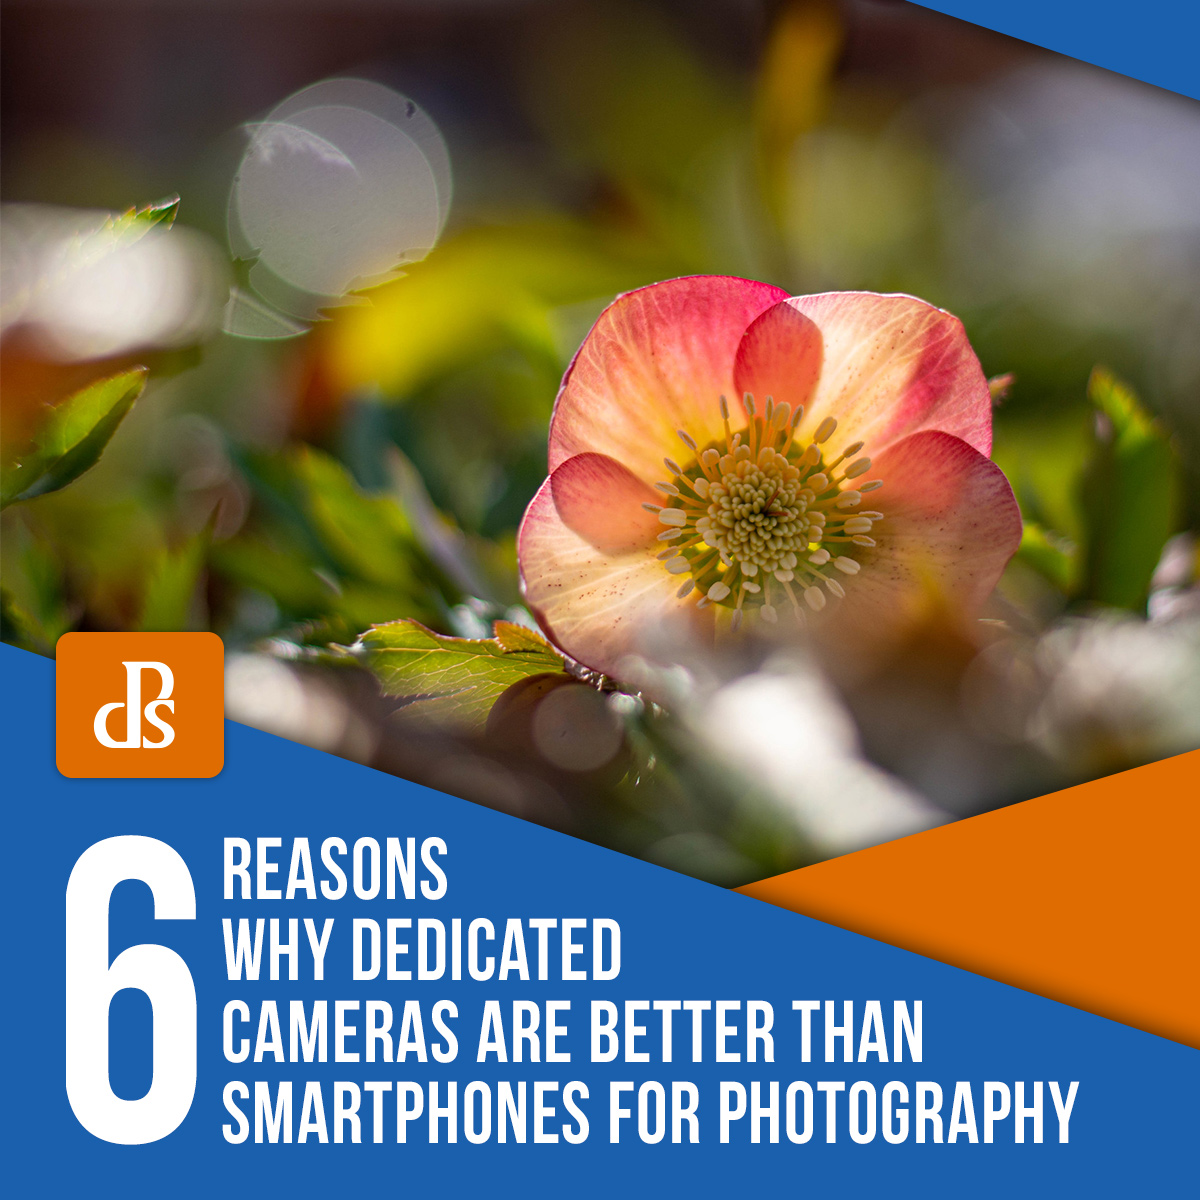 https://i0.wp.com/digital-photography-school.com/wp-content/uploads/2020/03/dps-cameras-are-better-than-smartphones-for-photography.jpg?ssl=1